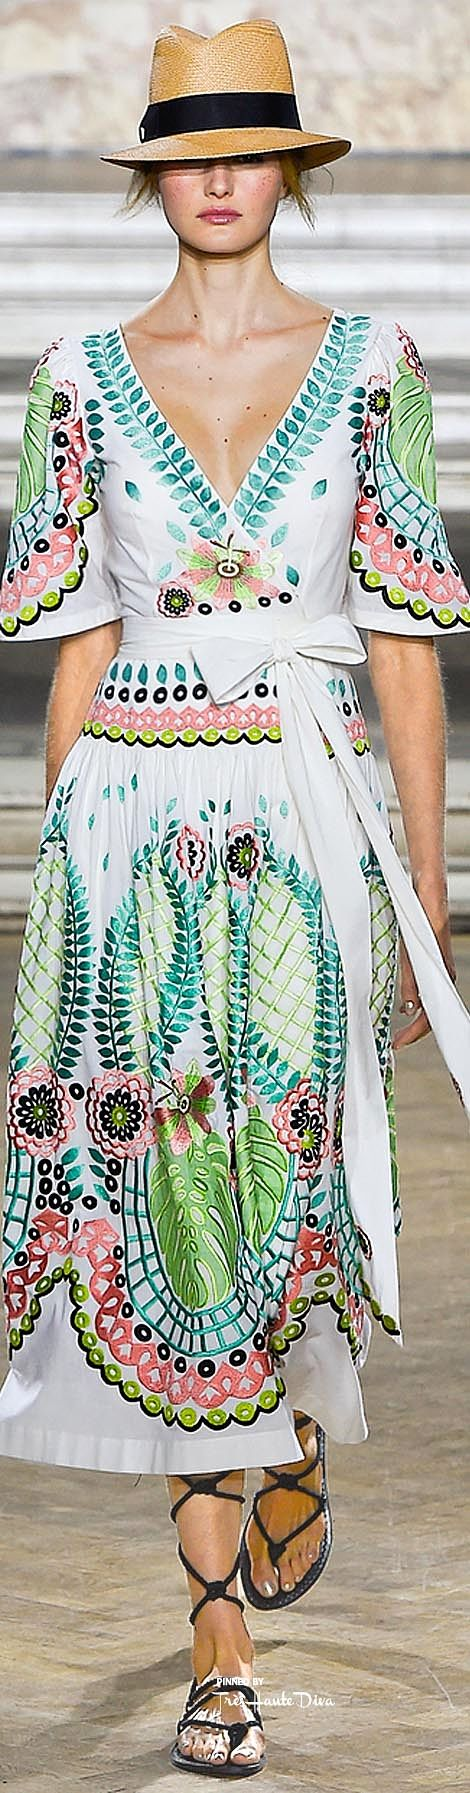 best images about fashion on pinterest jason wu ralph lauren